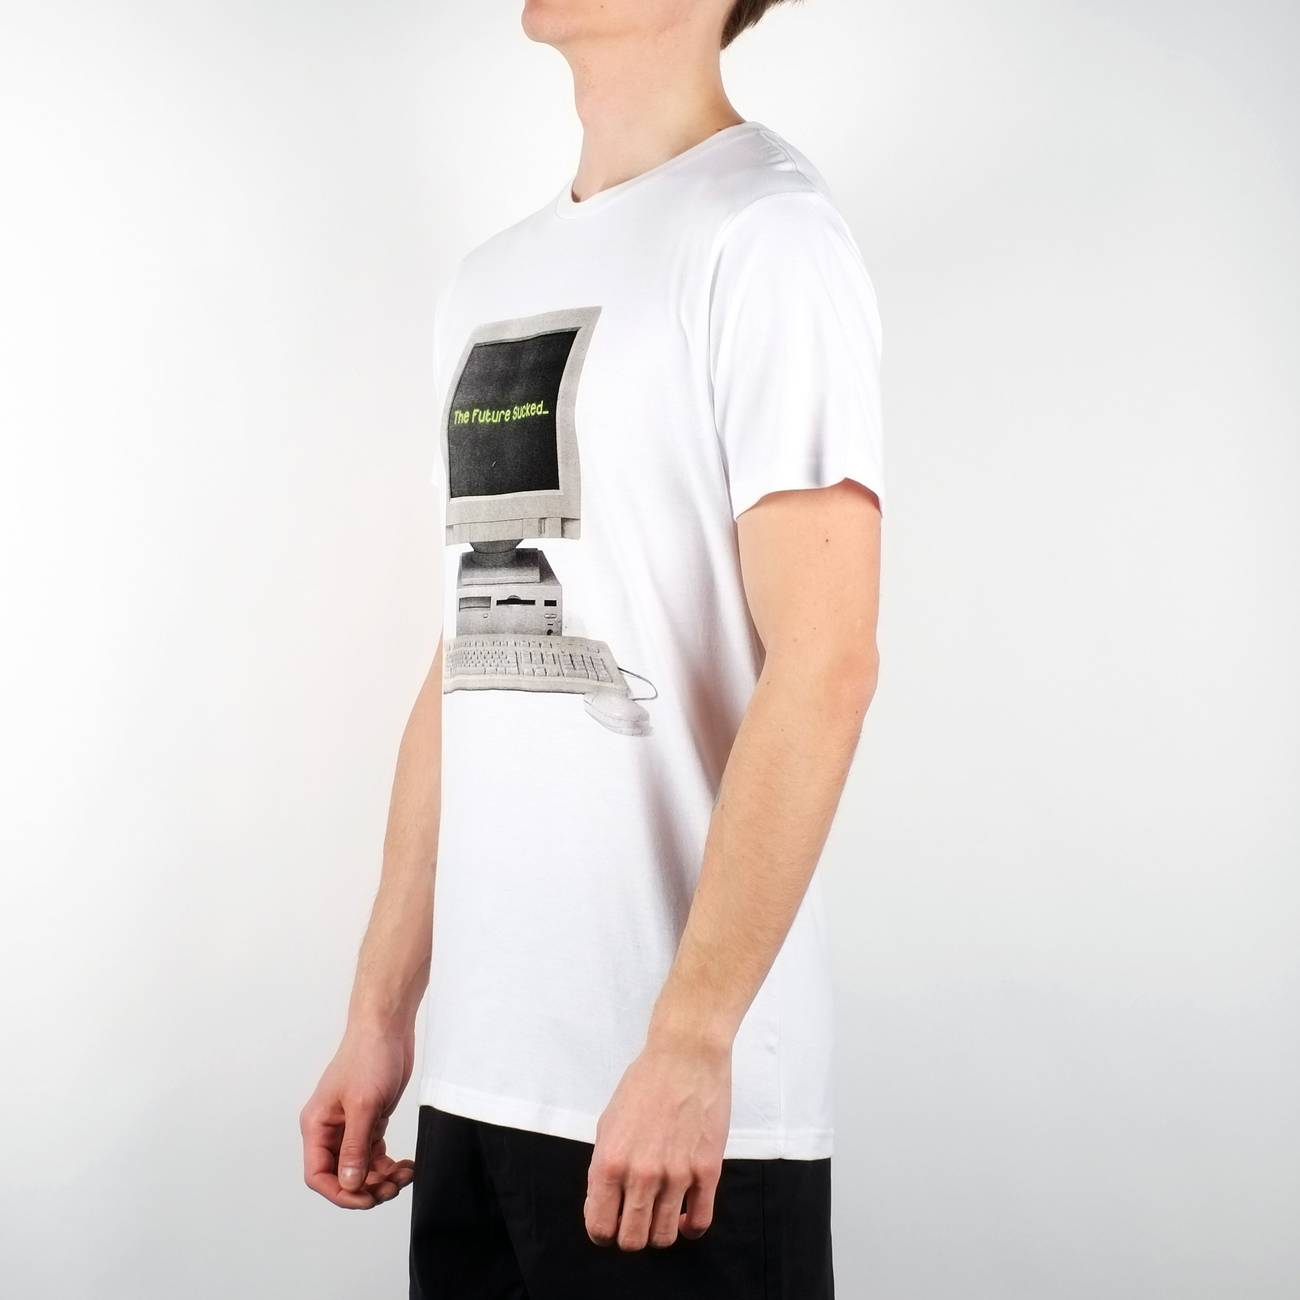 Stockholm T-shirt The Future Sucked